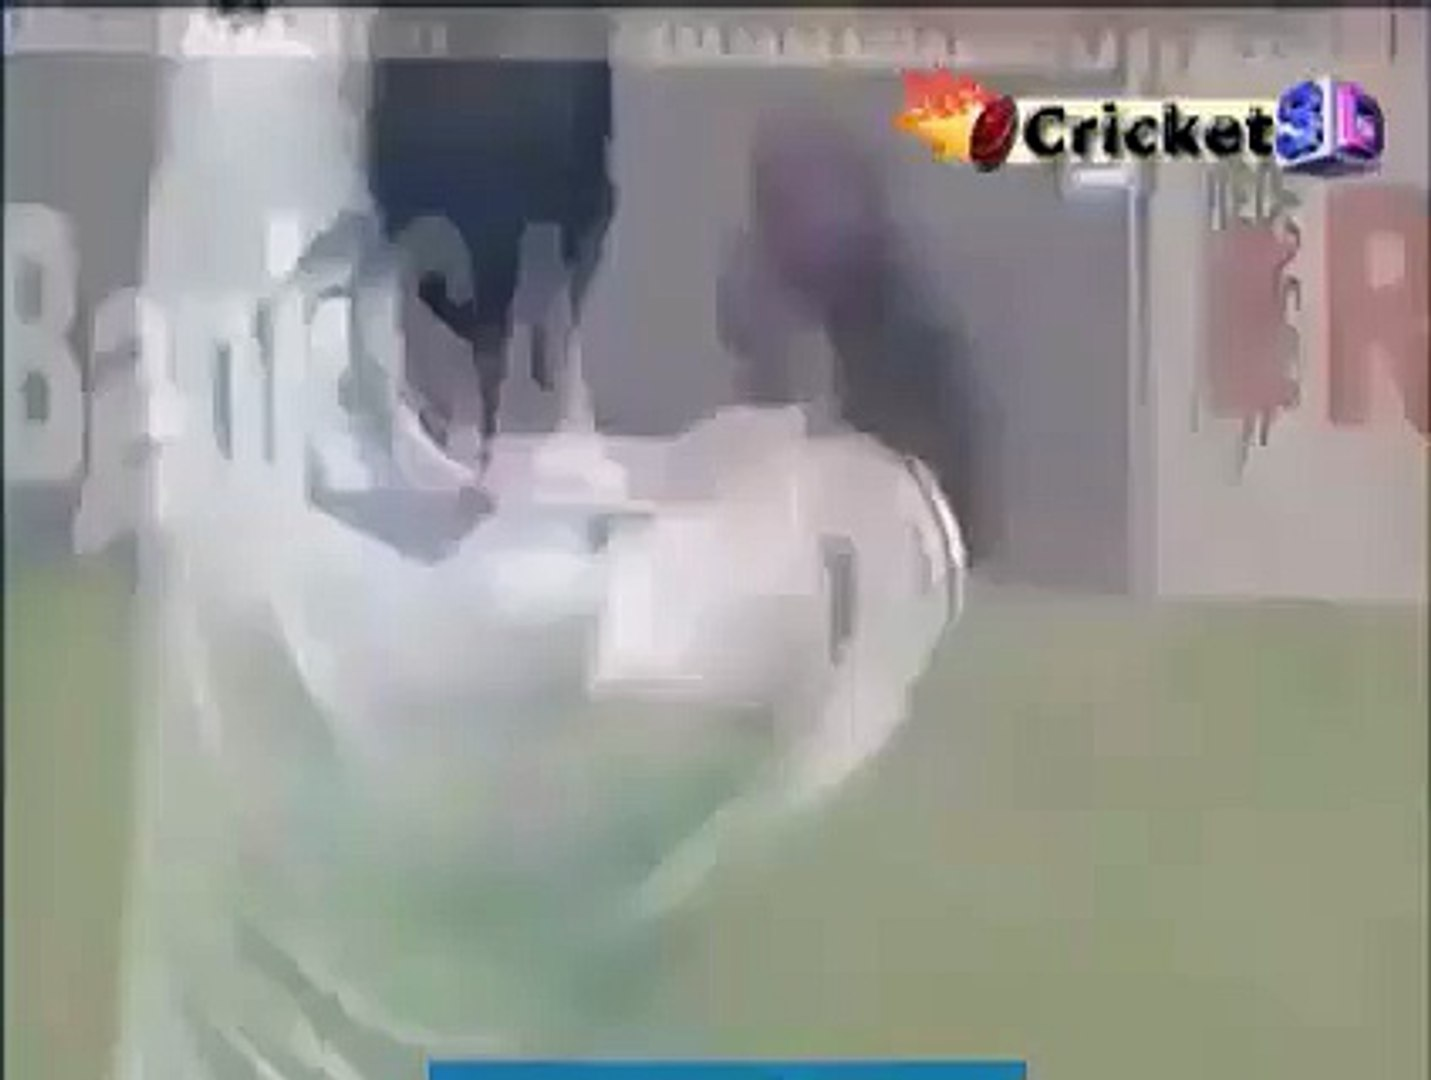 Classic Great Catch - Andrew Strauss takes a Brilliant Catch